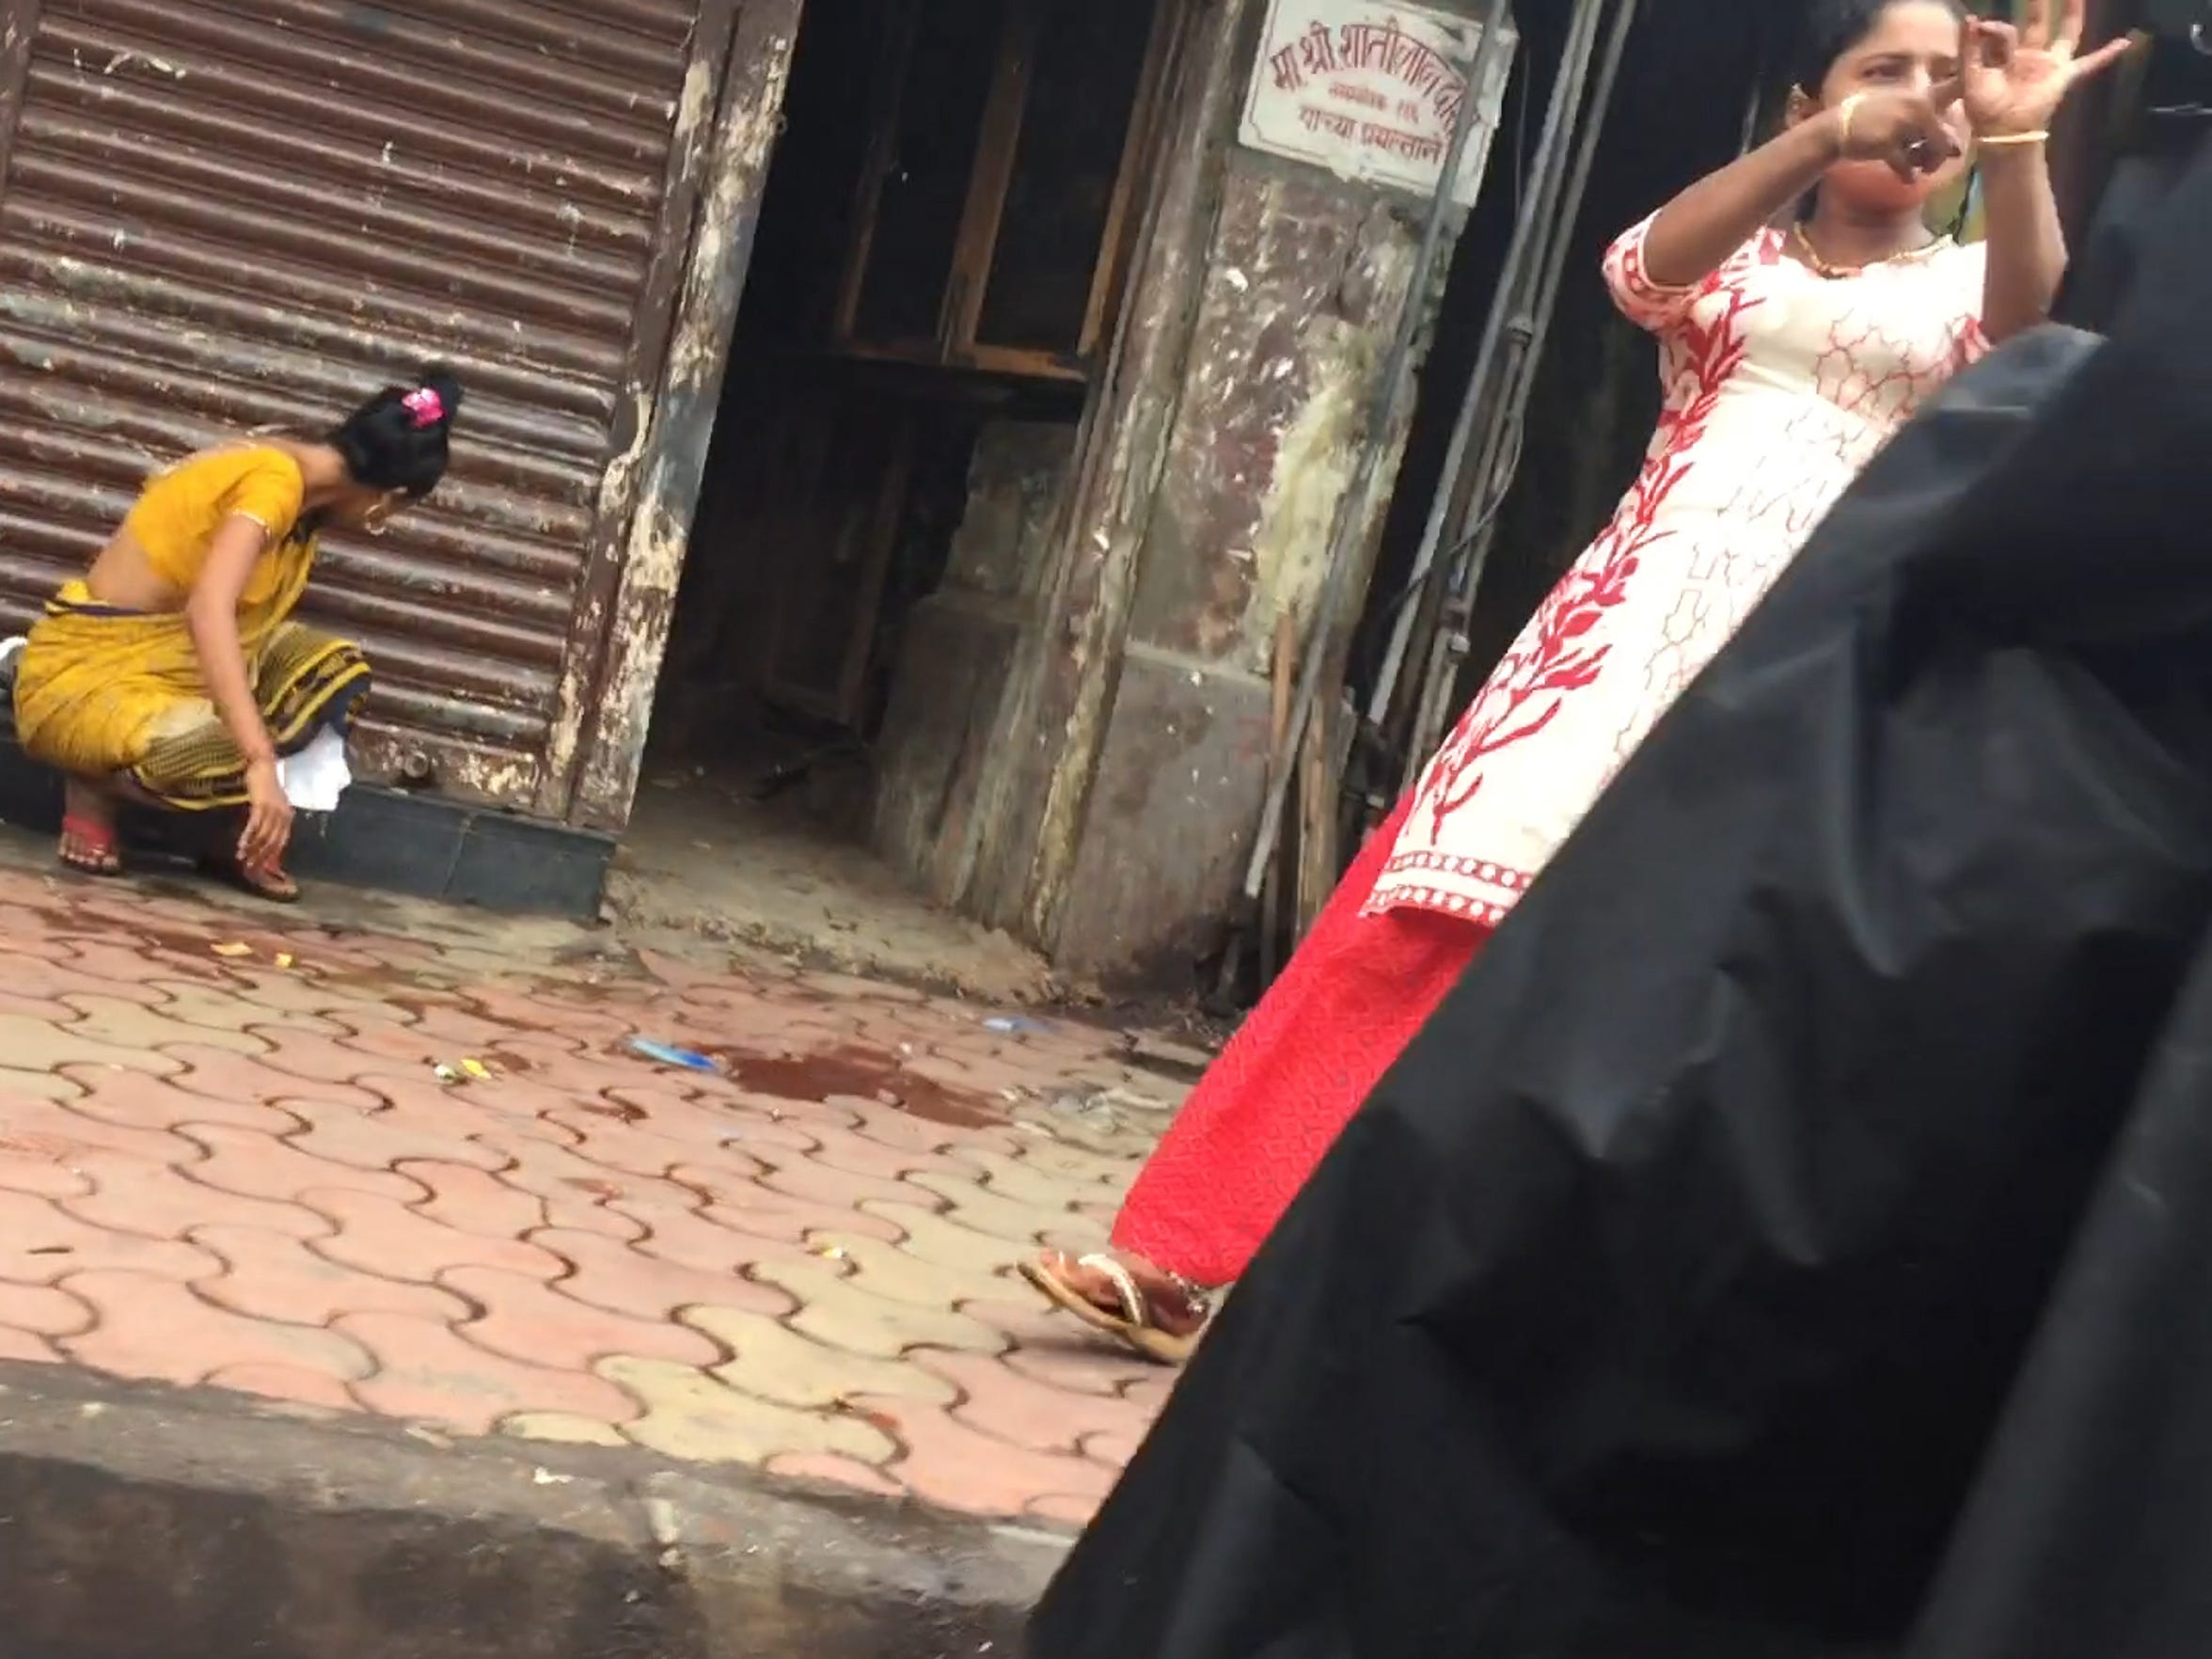 A woman along Falkland Road in Mumbai, India, makes a circle with a thumb and finger and rapidly thrusts the index finger of her other hand in and out. This area is known for its public brothels.